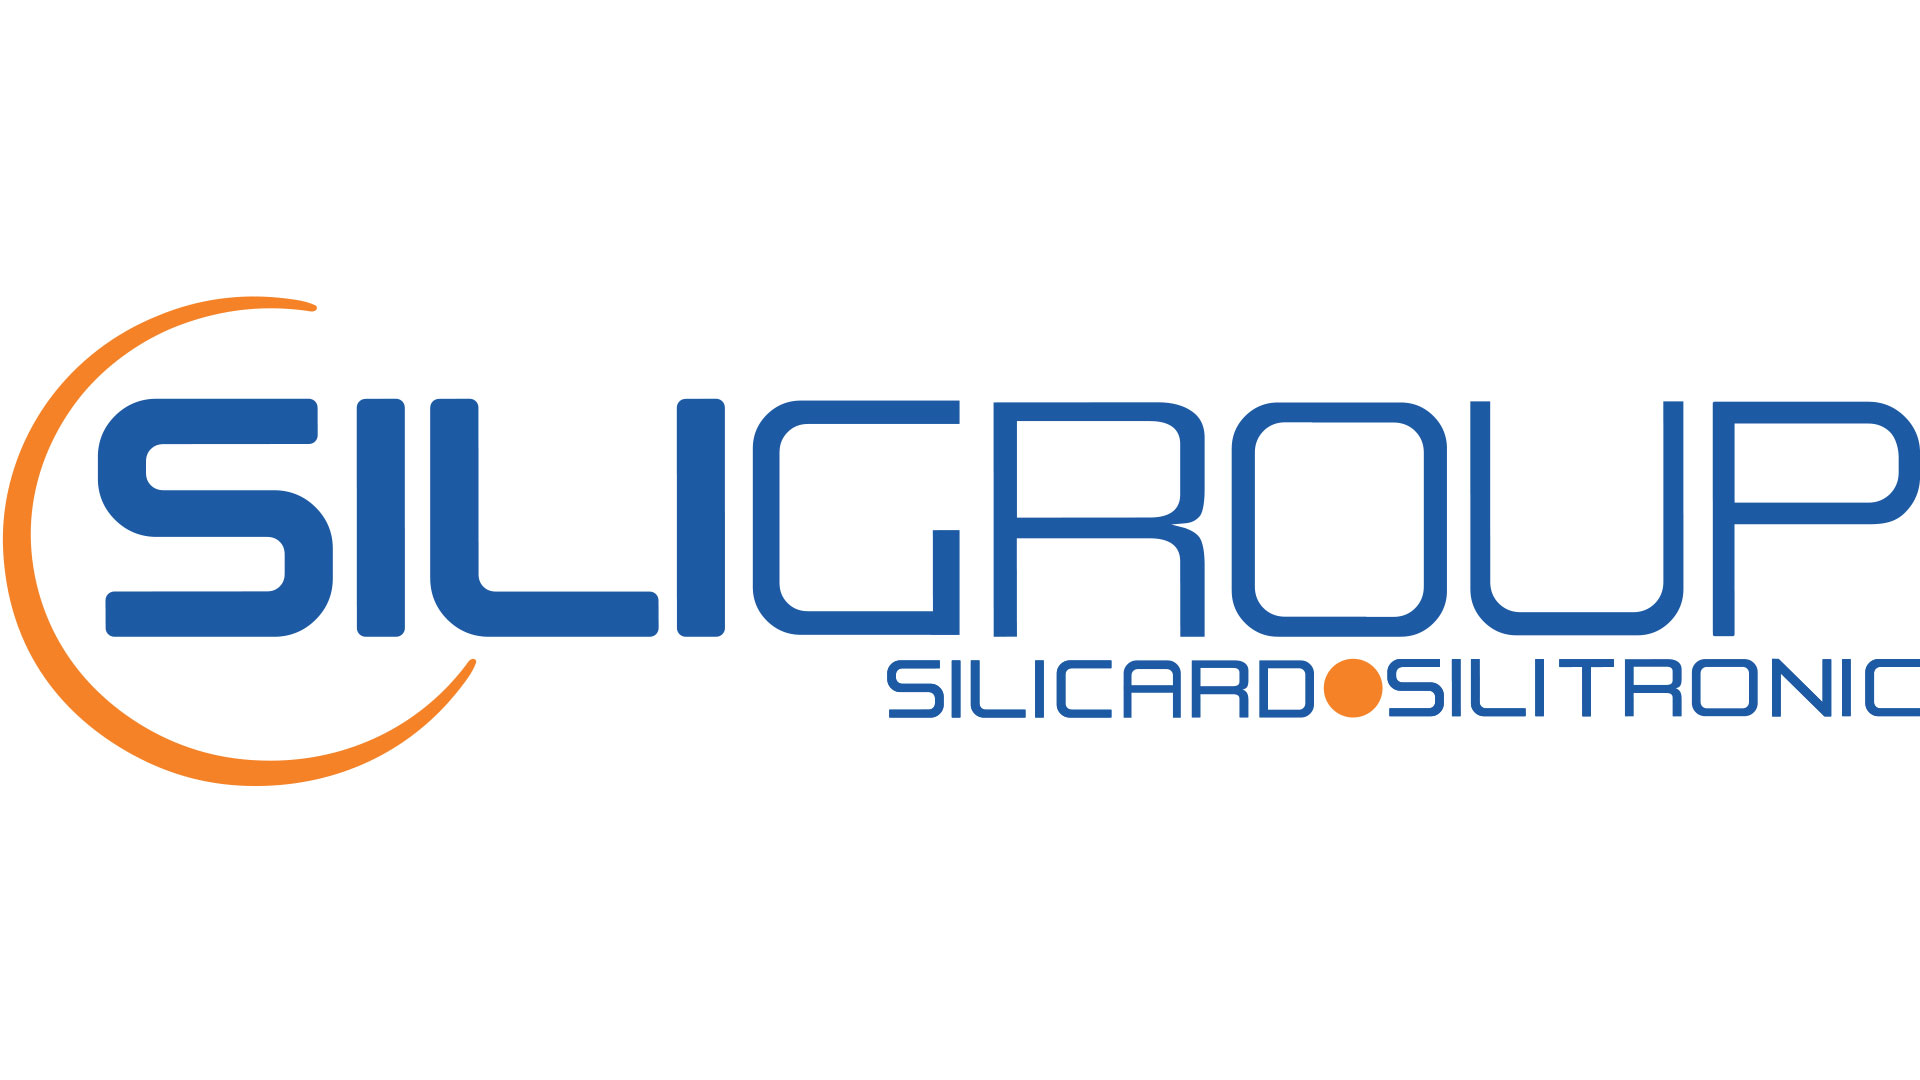 Siligroup